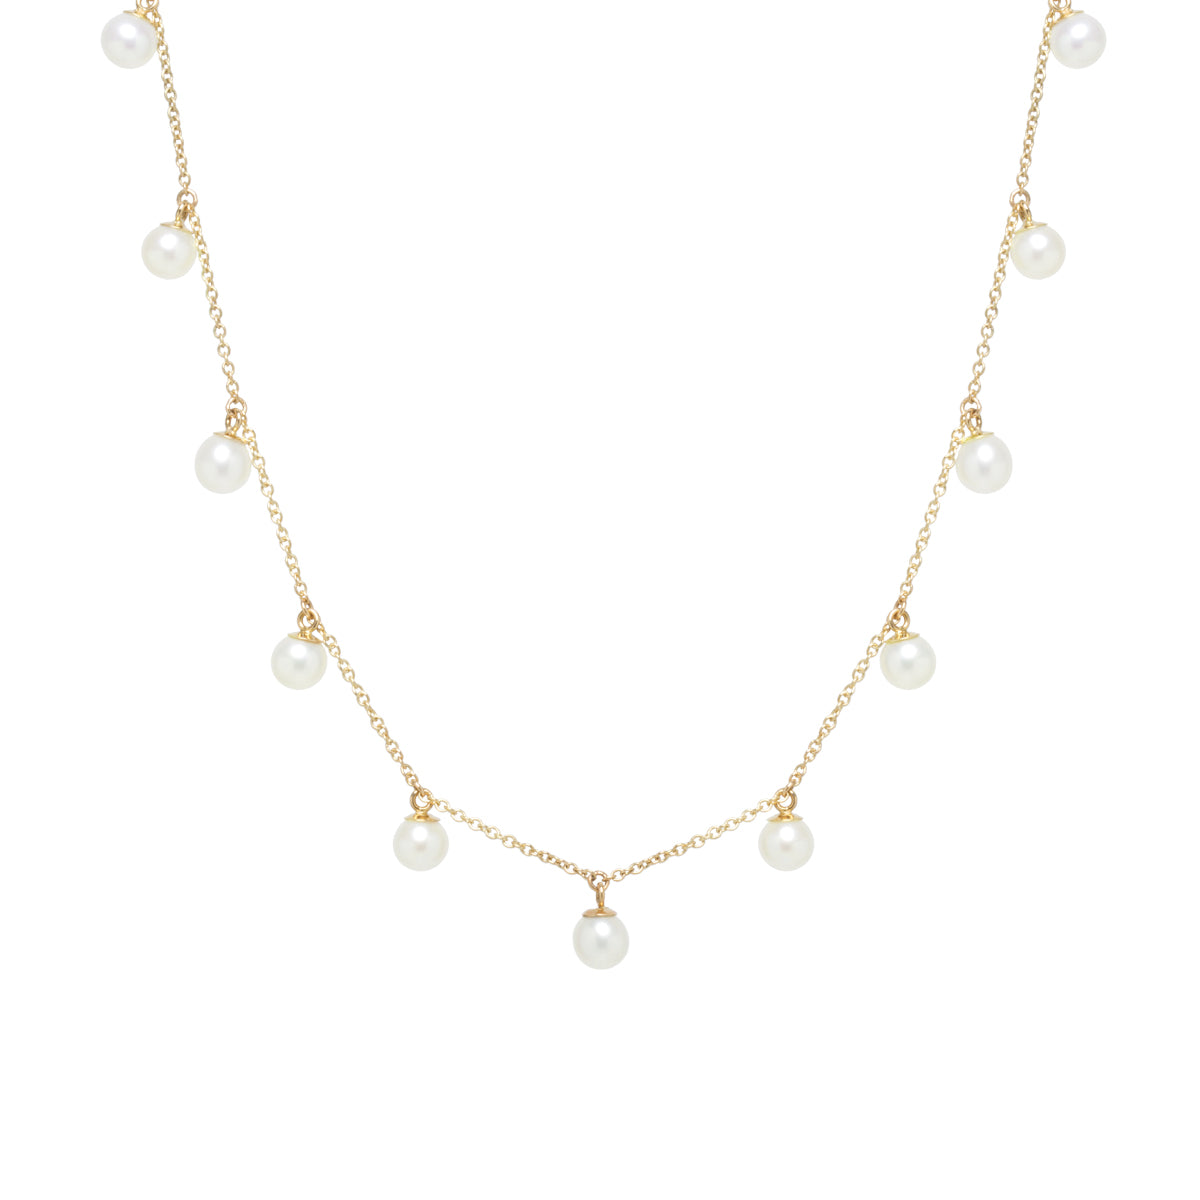 Zoë Chicco 14kt Yellow Gold 11 Dangling White Pearl Choker Necklace